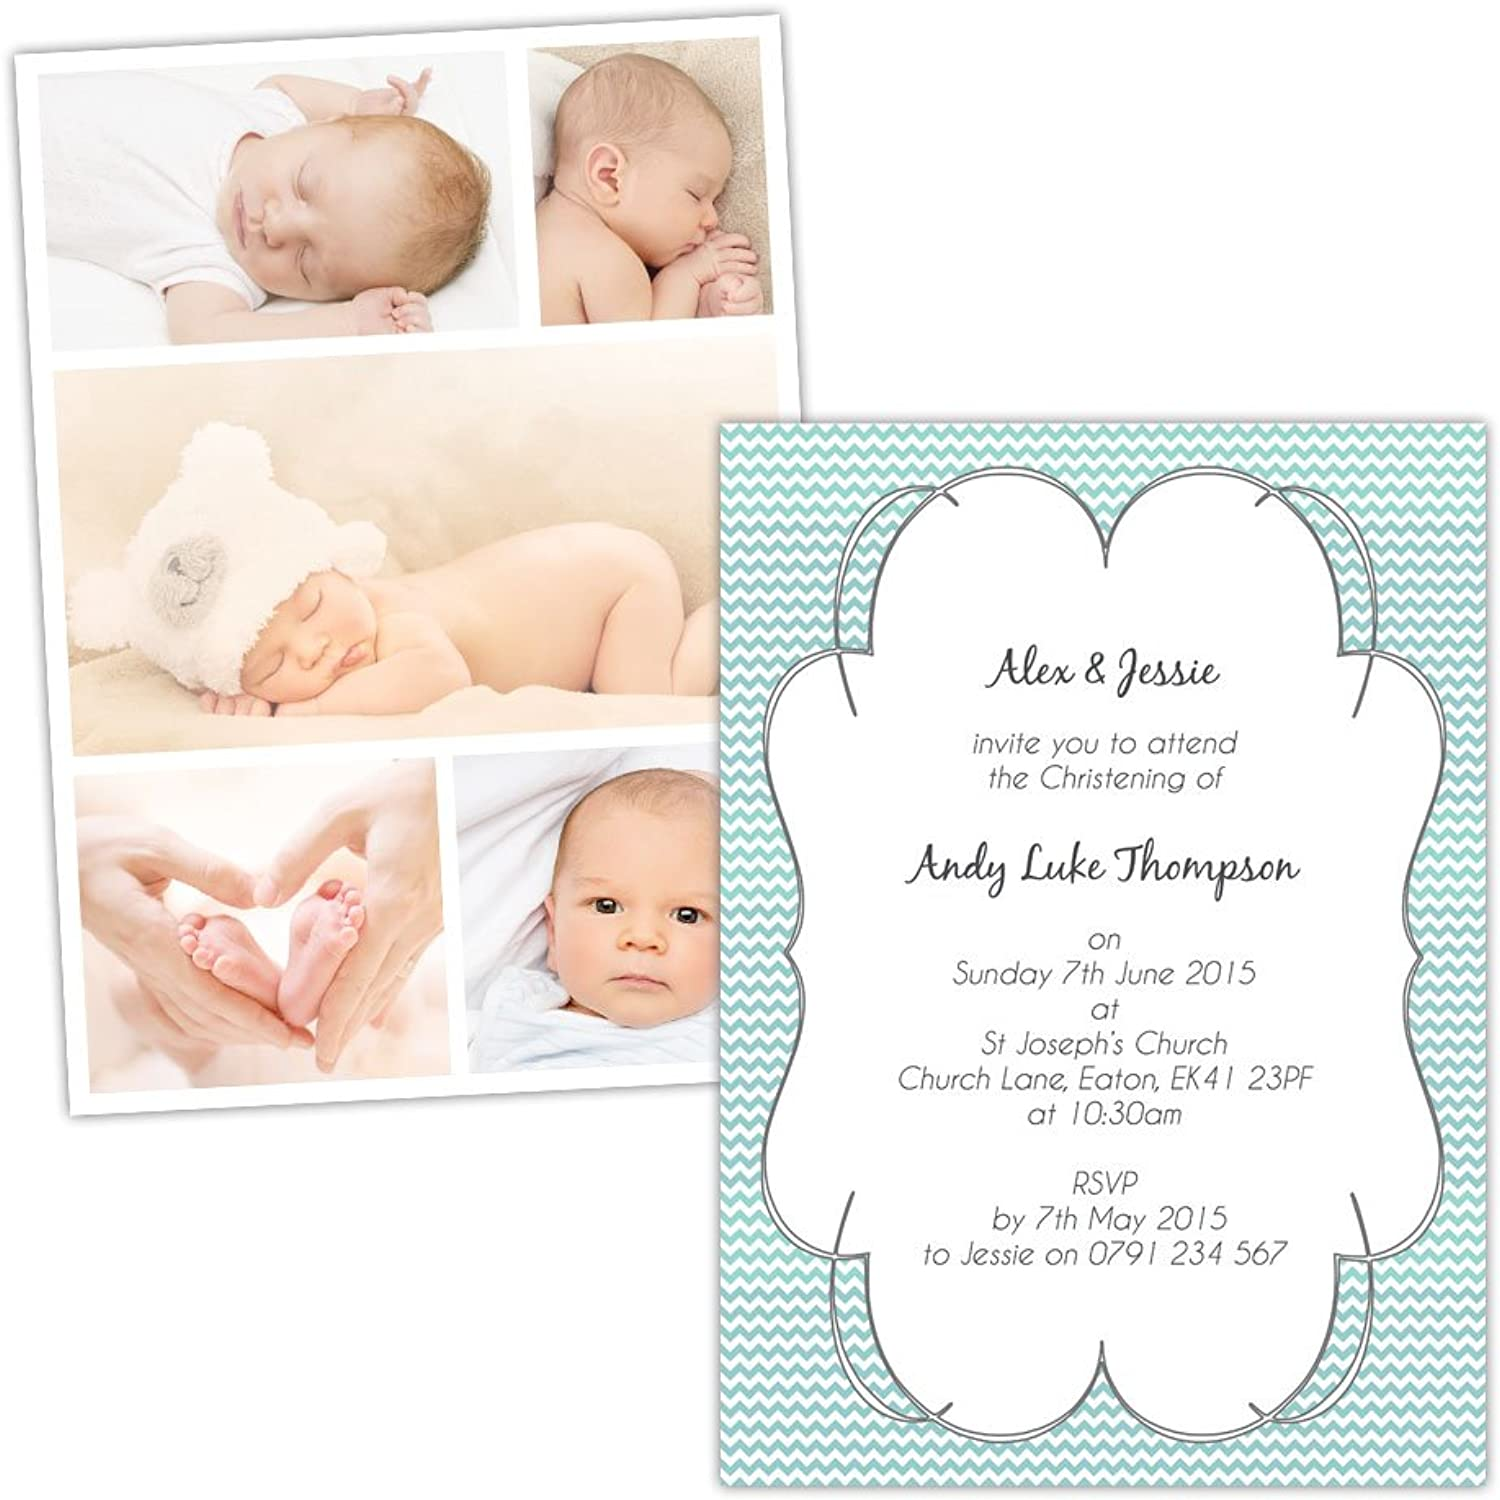 Made by Mika Personalised Christening invitations CHEVRON FRAME SWIRLY BORDER PHOTOS FREE DRAFT & FREE ENVELOPES (50, A5 singlesided Silk card)